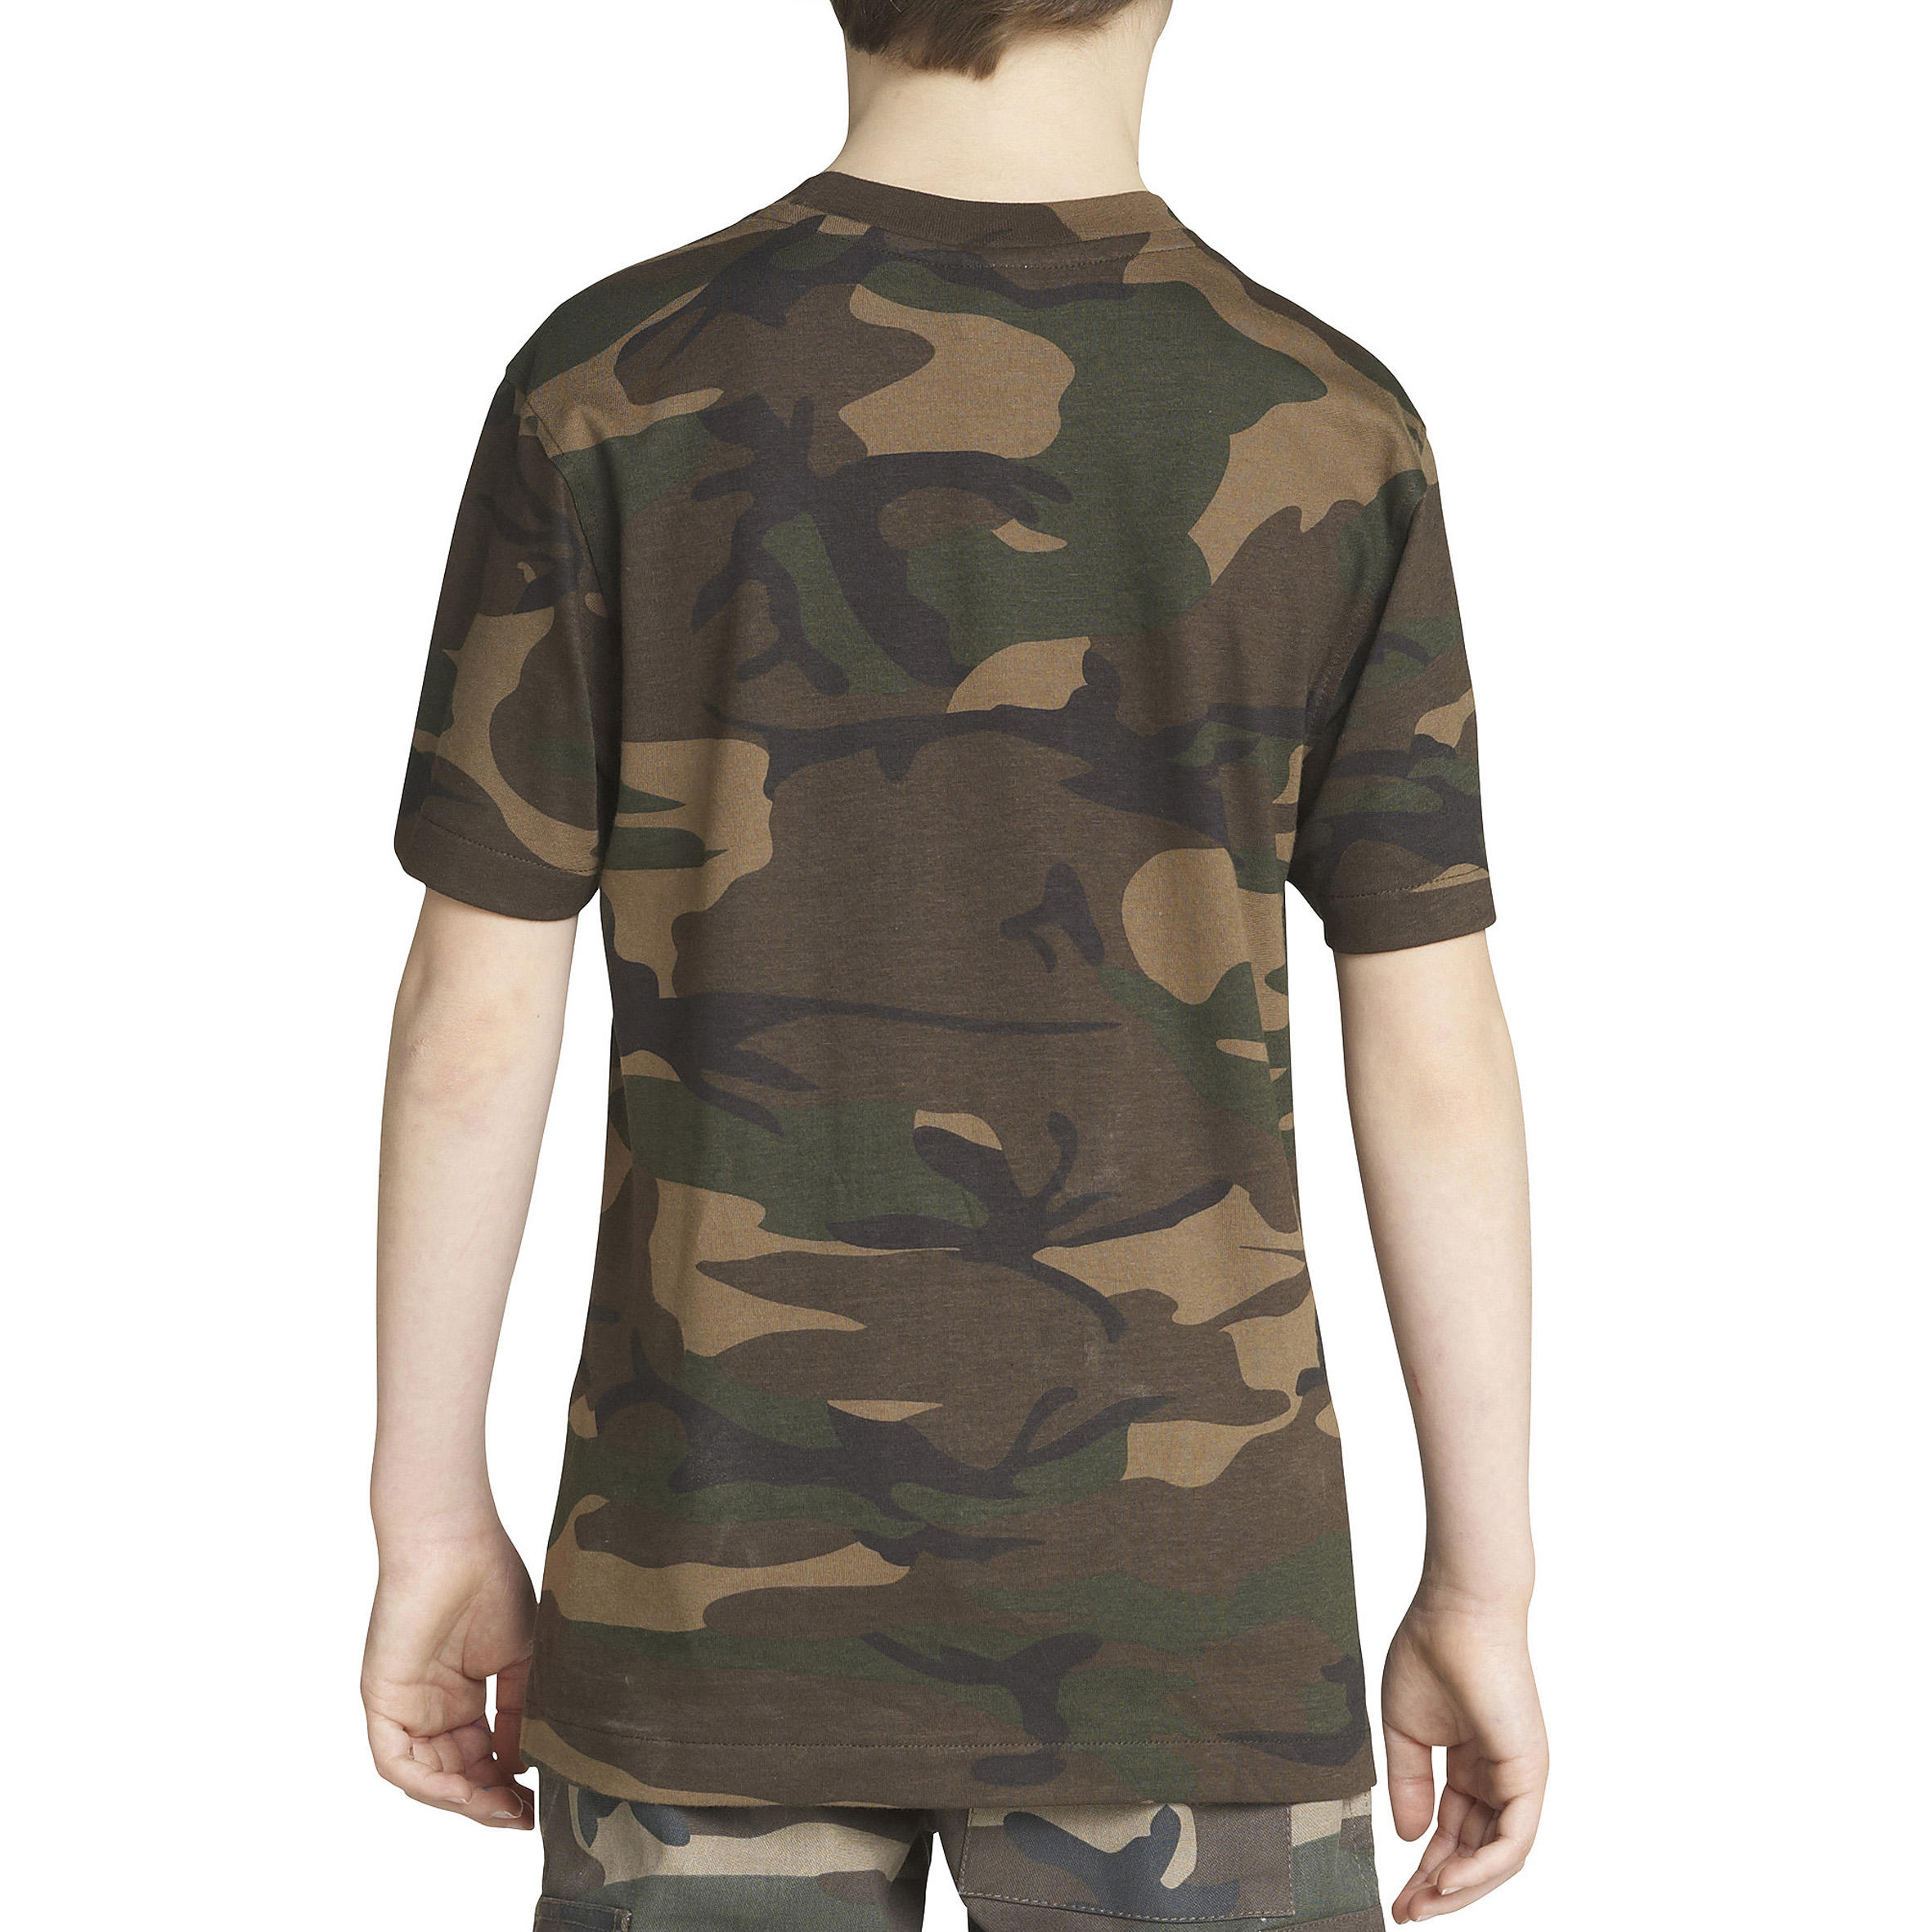 STEPPE 100 JUNIOR T-SHIRT - CAMOUFLAGE GREEN